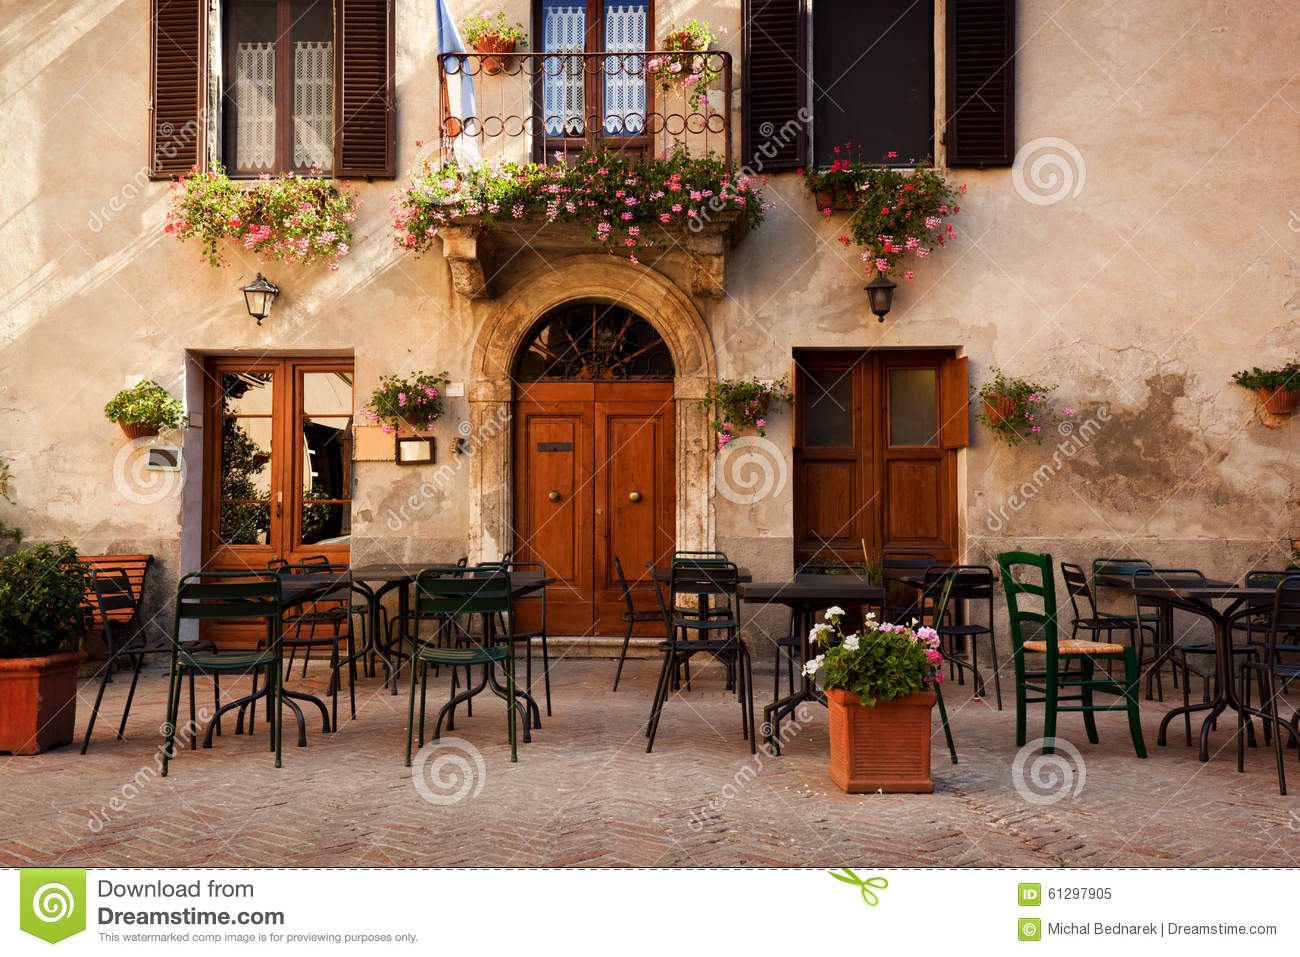 Retro Romantic Restaurant Cafe In A Small Italian Town Vintage Italy Stock Image Image Of Romantic Pienza 61297905